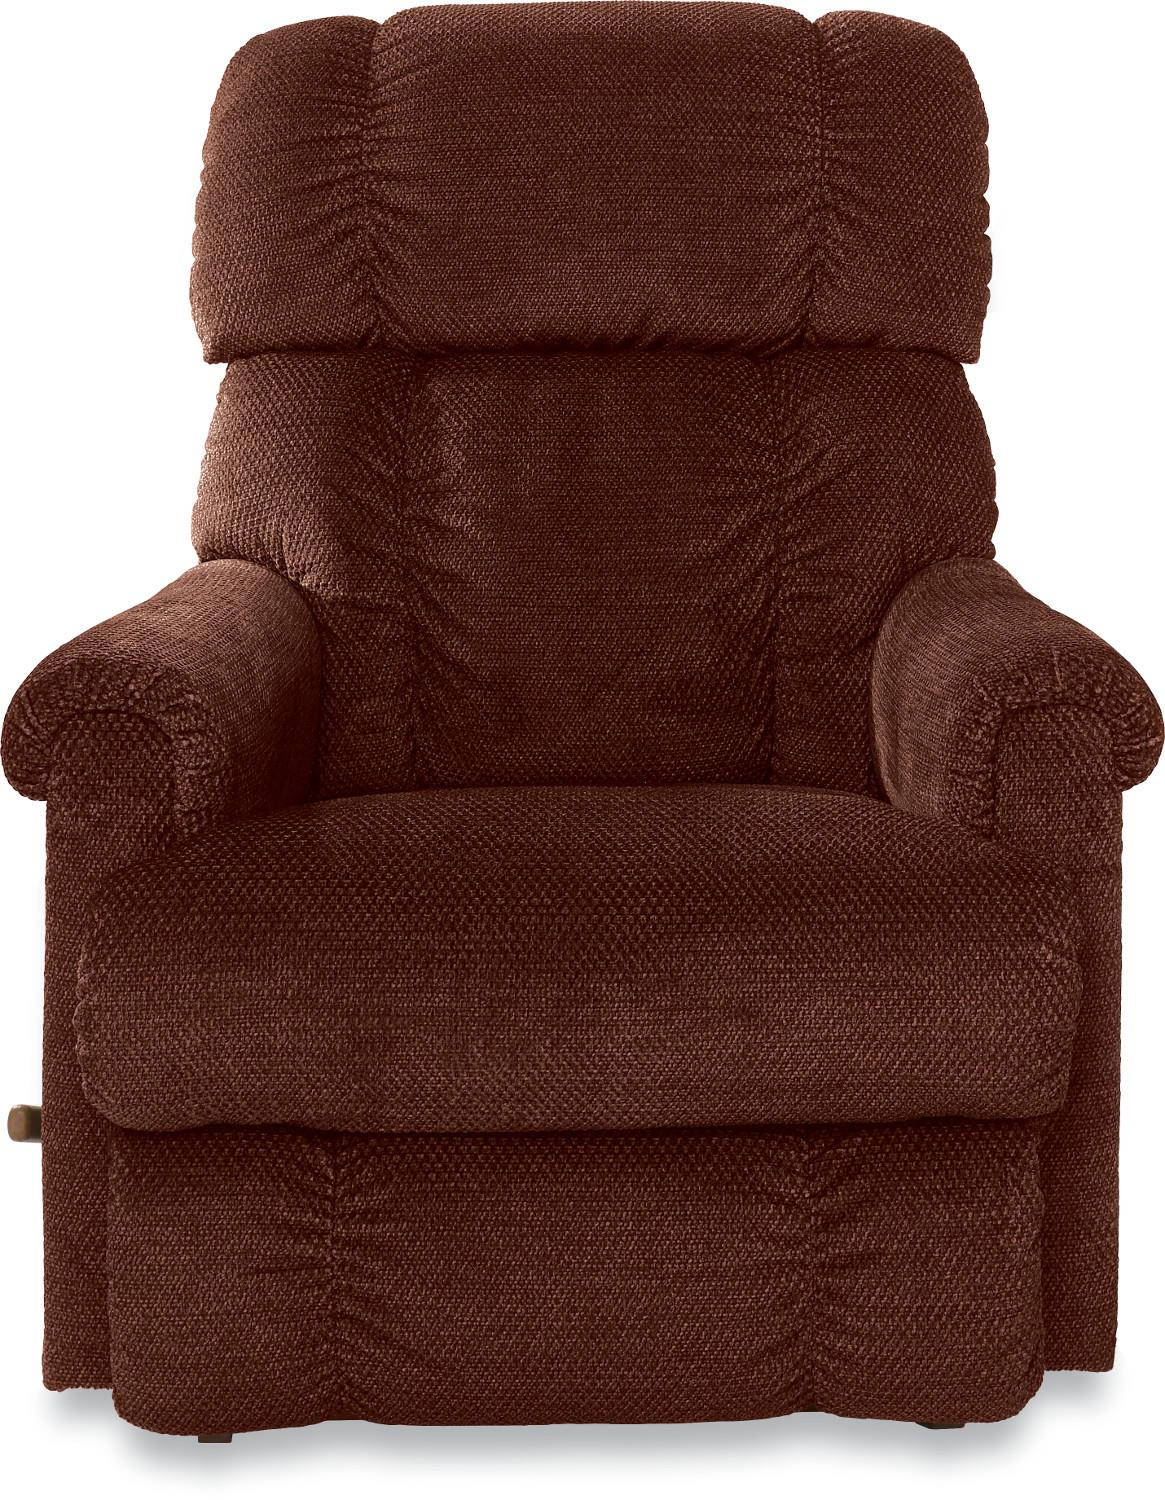 Pinnacle Wall Recliner by La-Z-Boy at Jordan's Home Furnishings